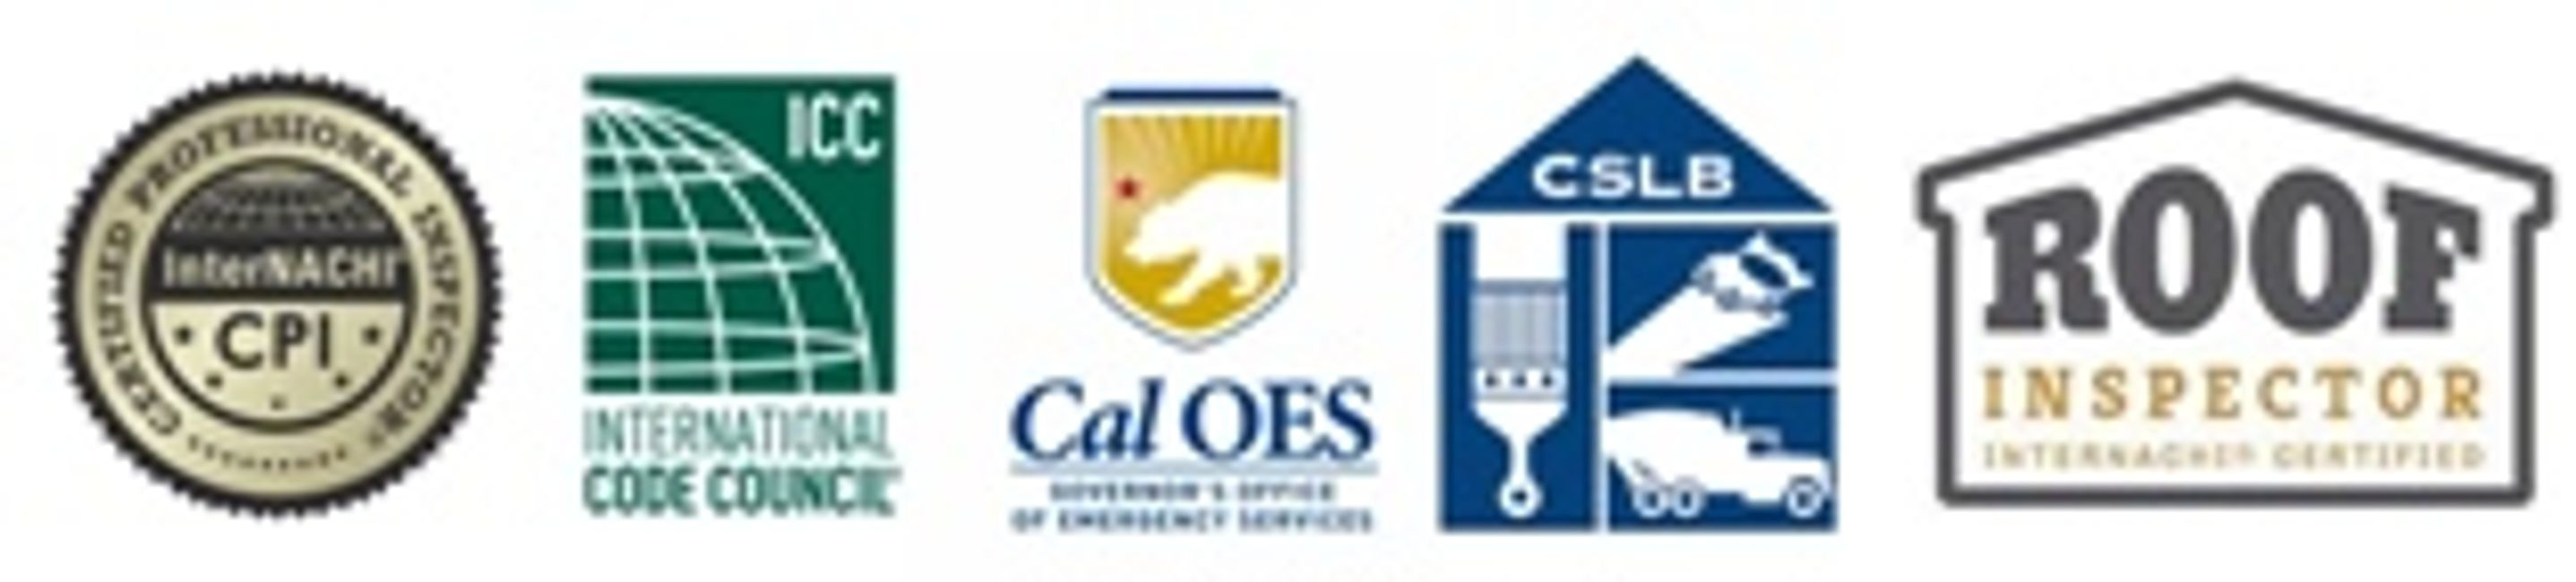 Certified NACHI home inspector, Certified ICC building inspector, Cal OES inspector